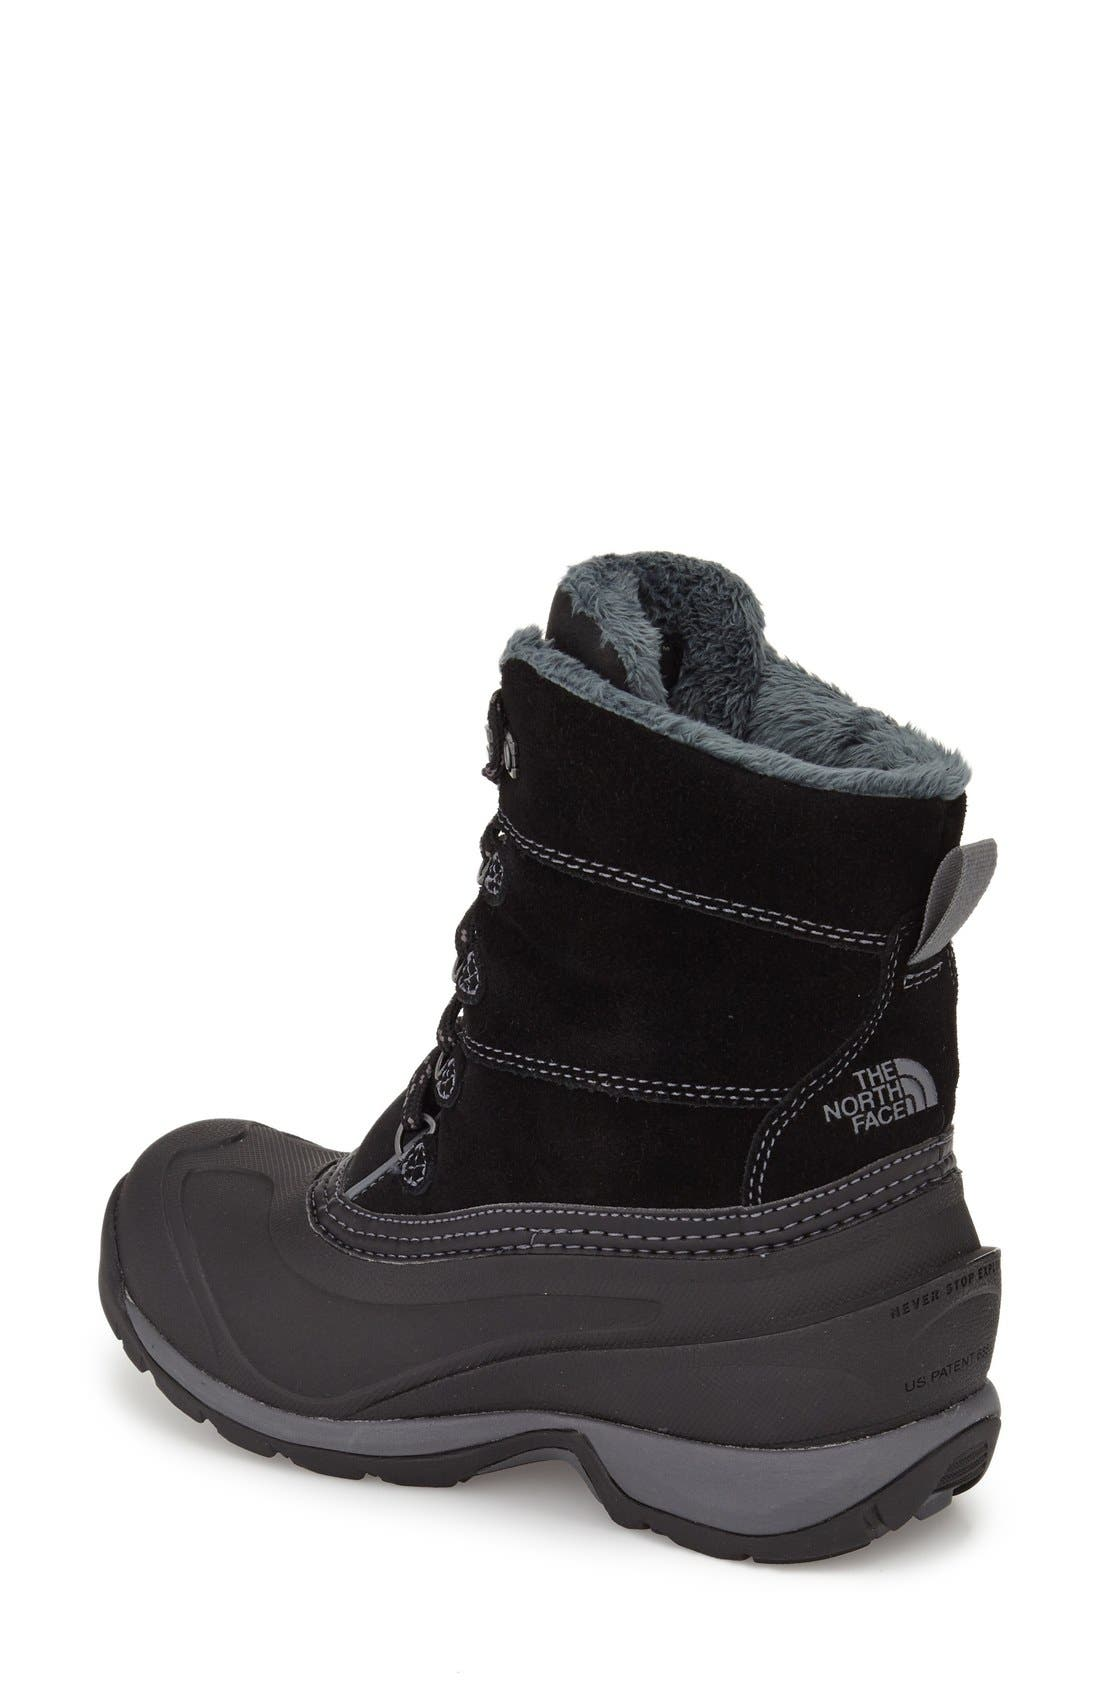 'Chilkat III' Waterproof Insulated Snow Boot,                             Alternate thumbnail 2, color,                             001